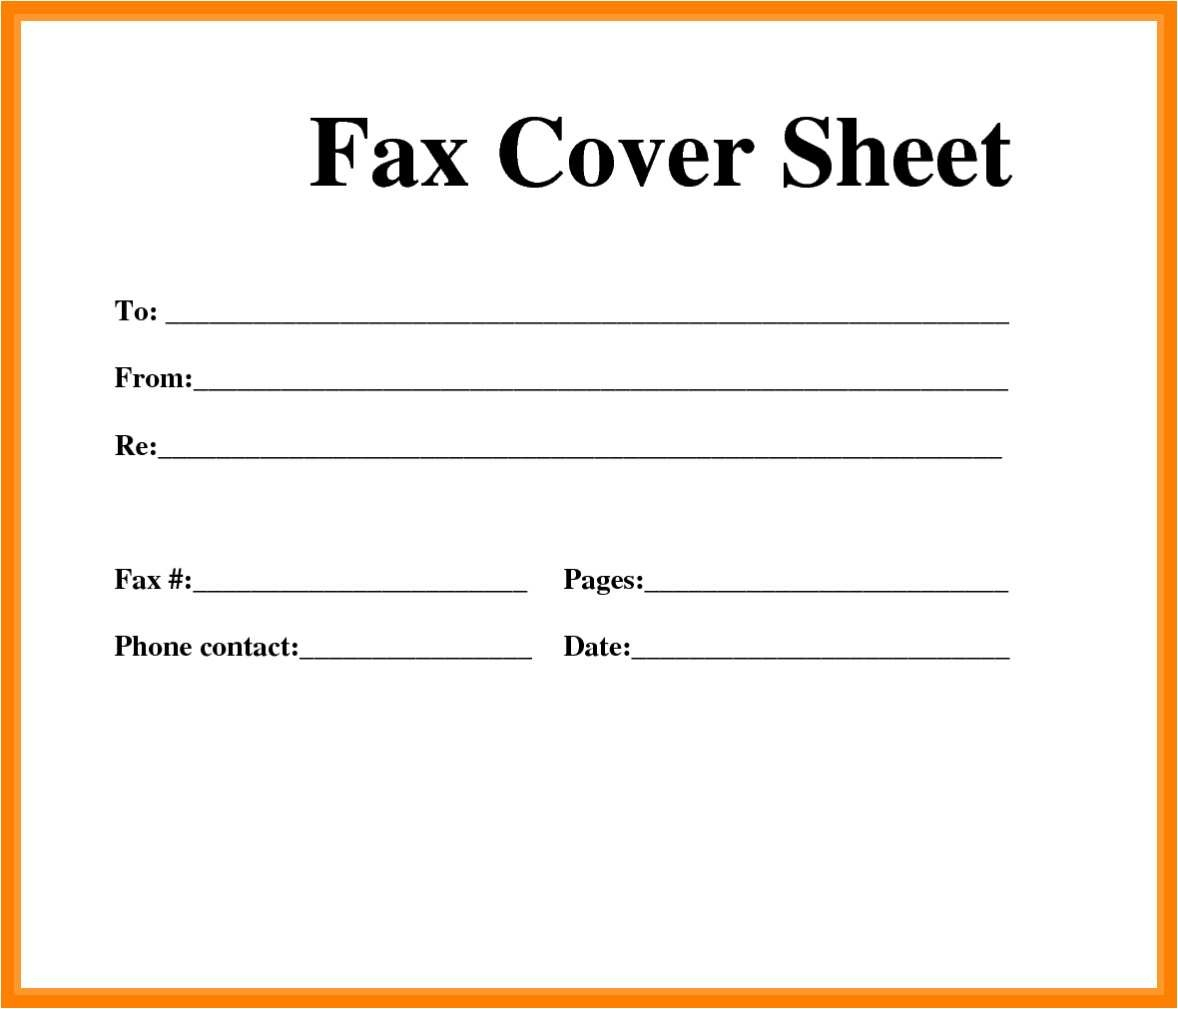 53 Fresh Fax Cover Sheet Template Word 2013 - All About Resume - Free Printable Cover Letter For Fax